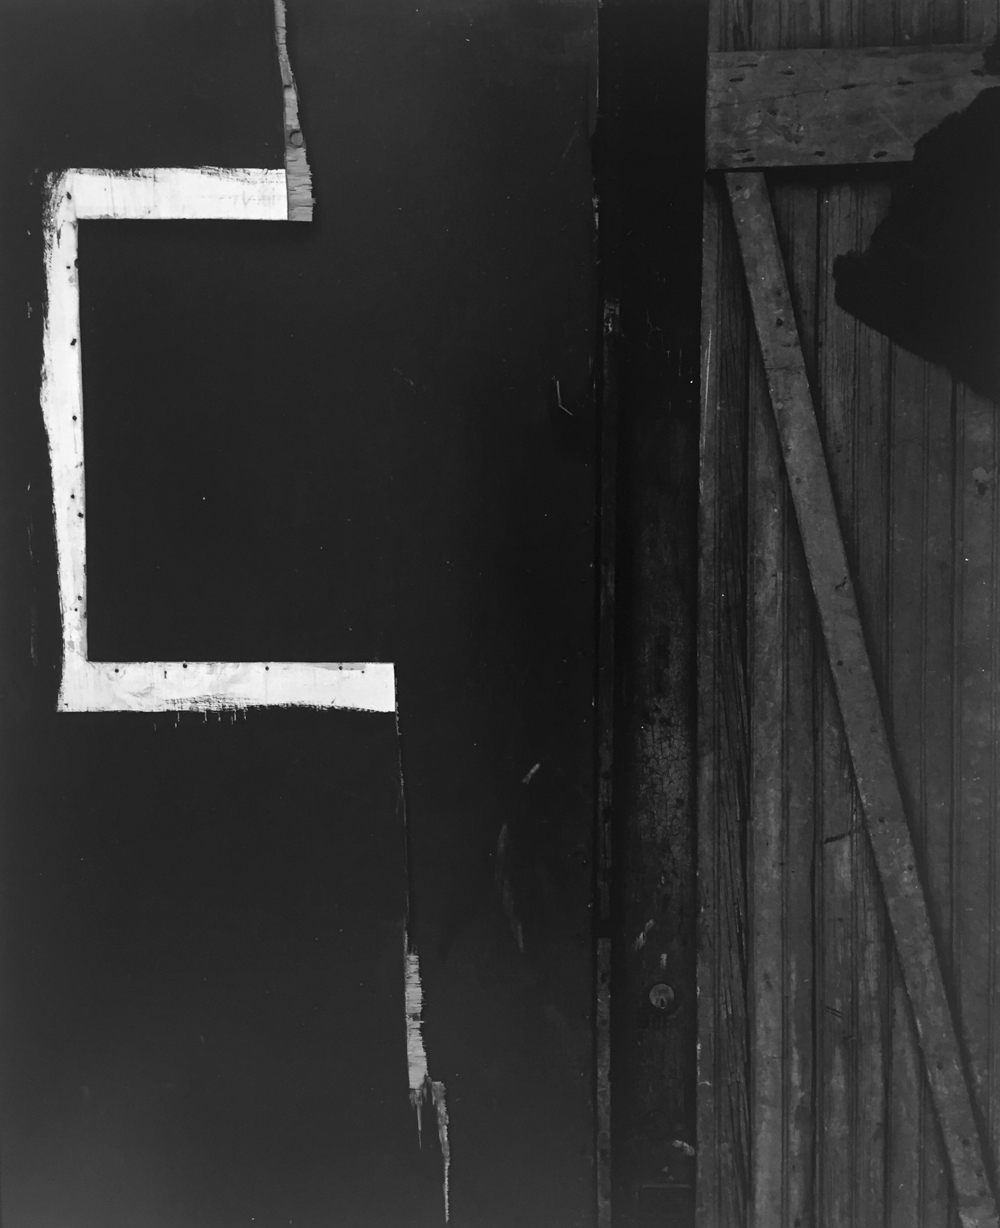 Aaron Siskind, Chicago 10, 1959, signed gelatin silver print, 11 x 14 inches